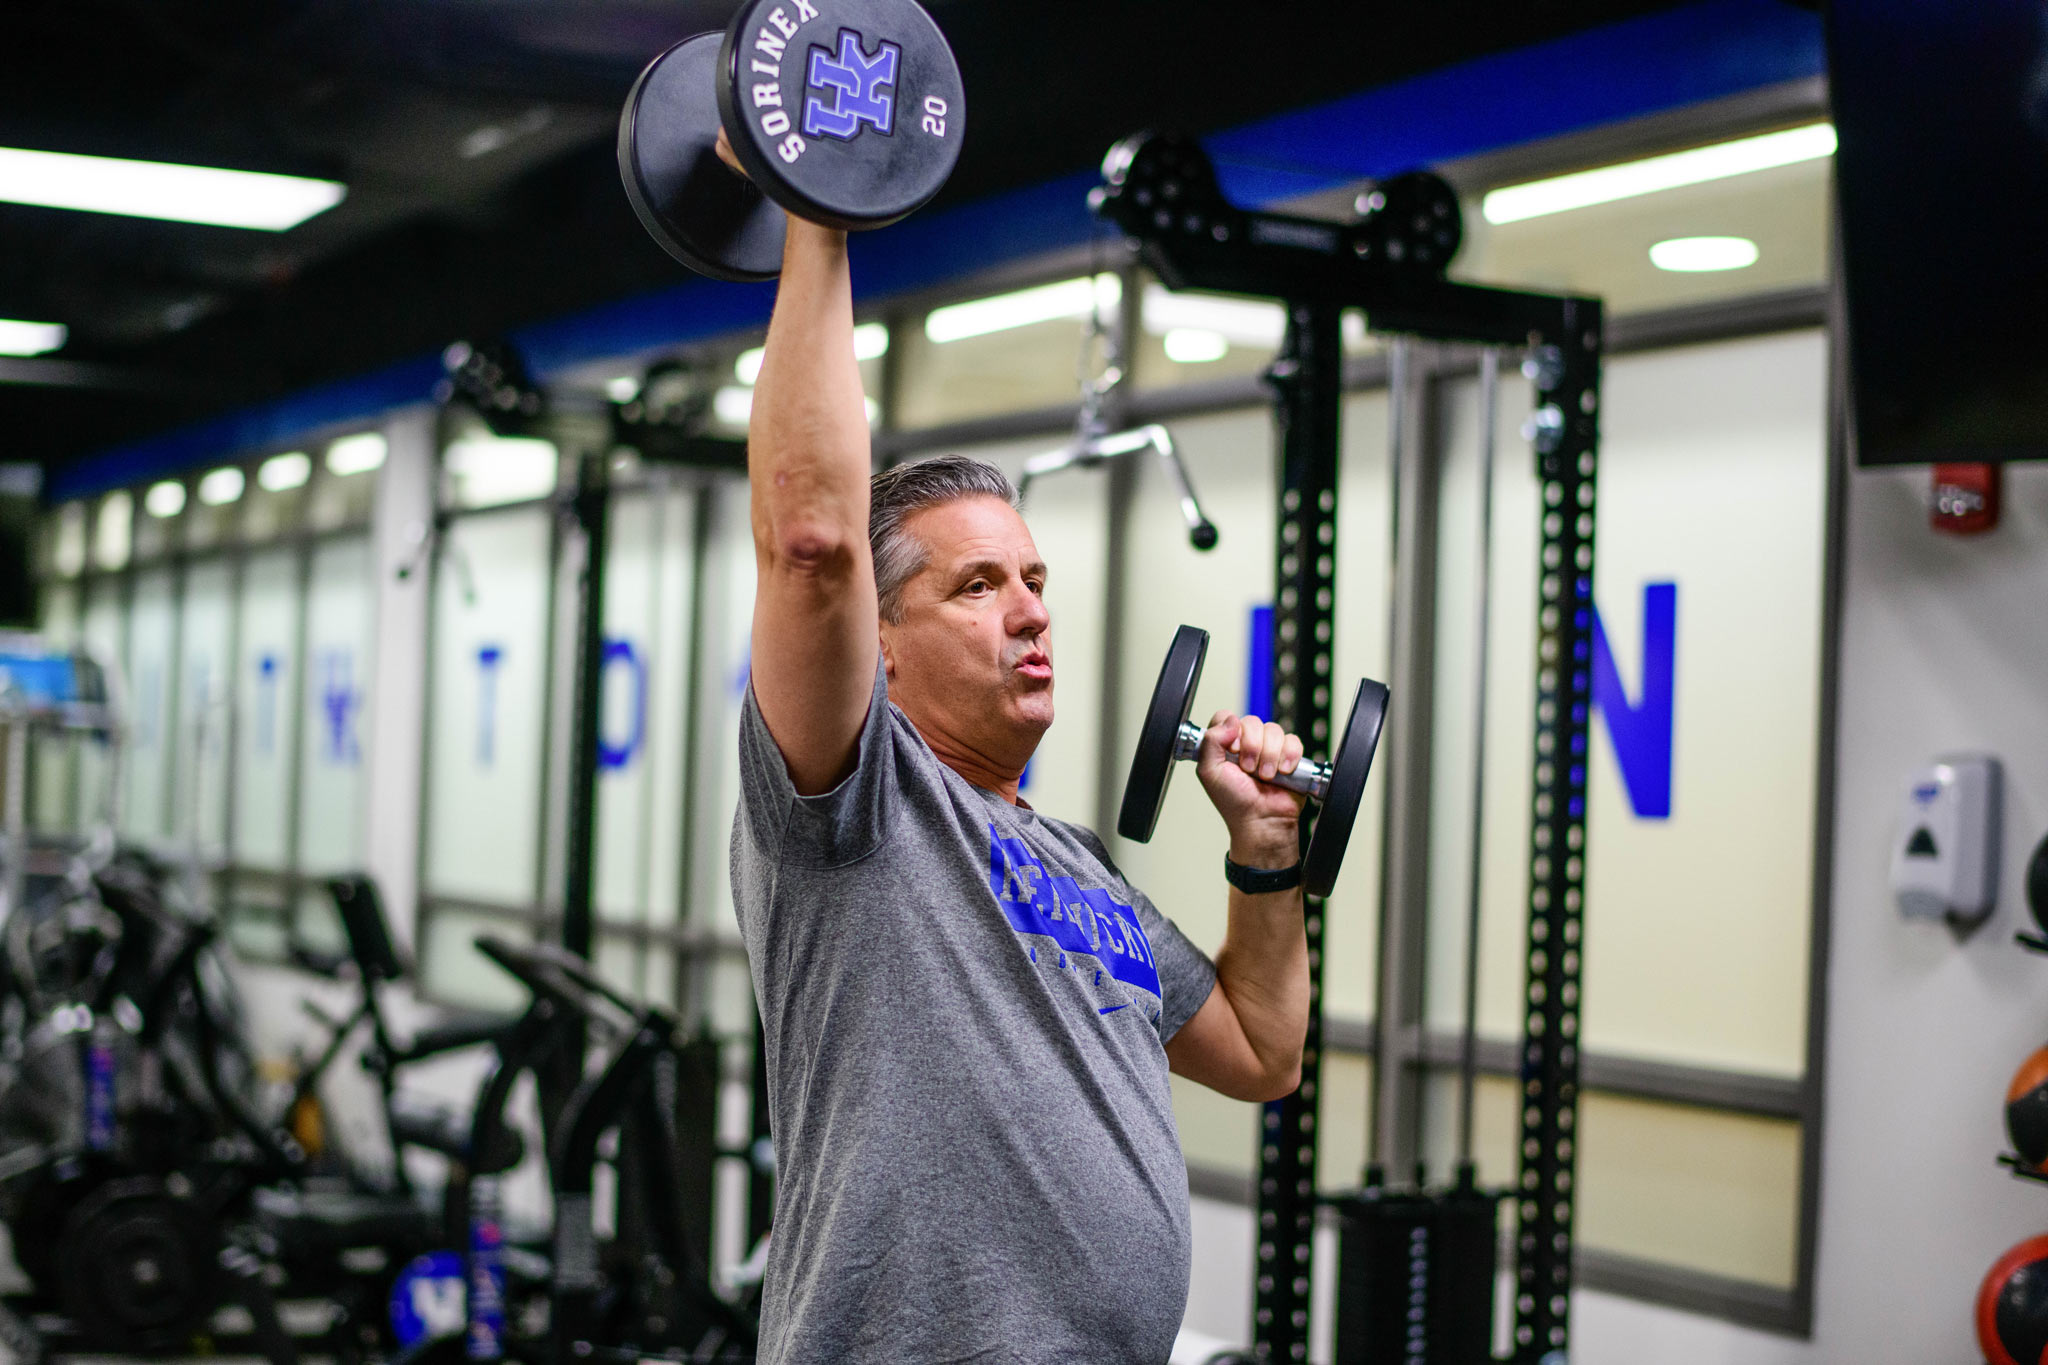 Coach Calipari lifts 20 pound dumbbells over his head at the gym.